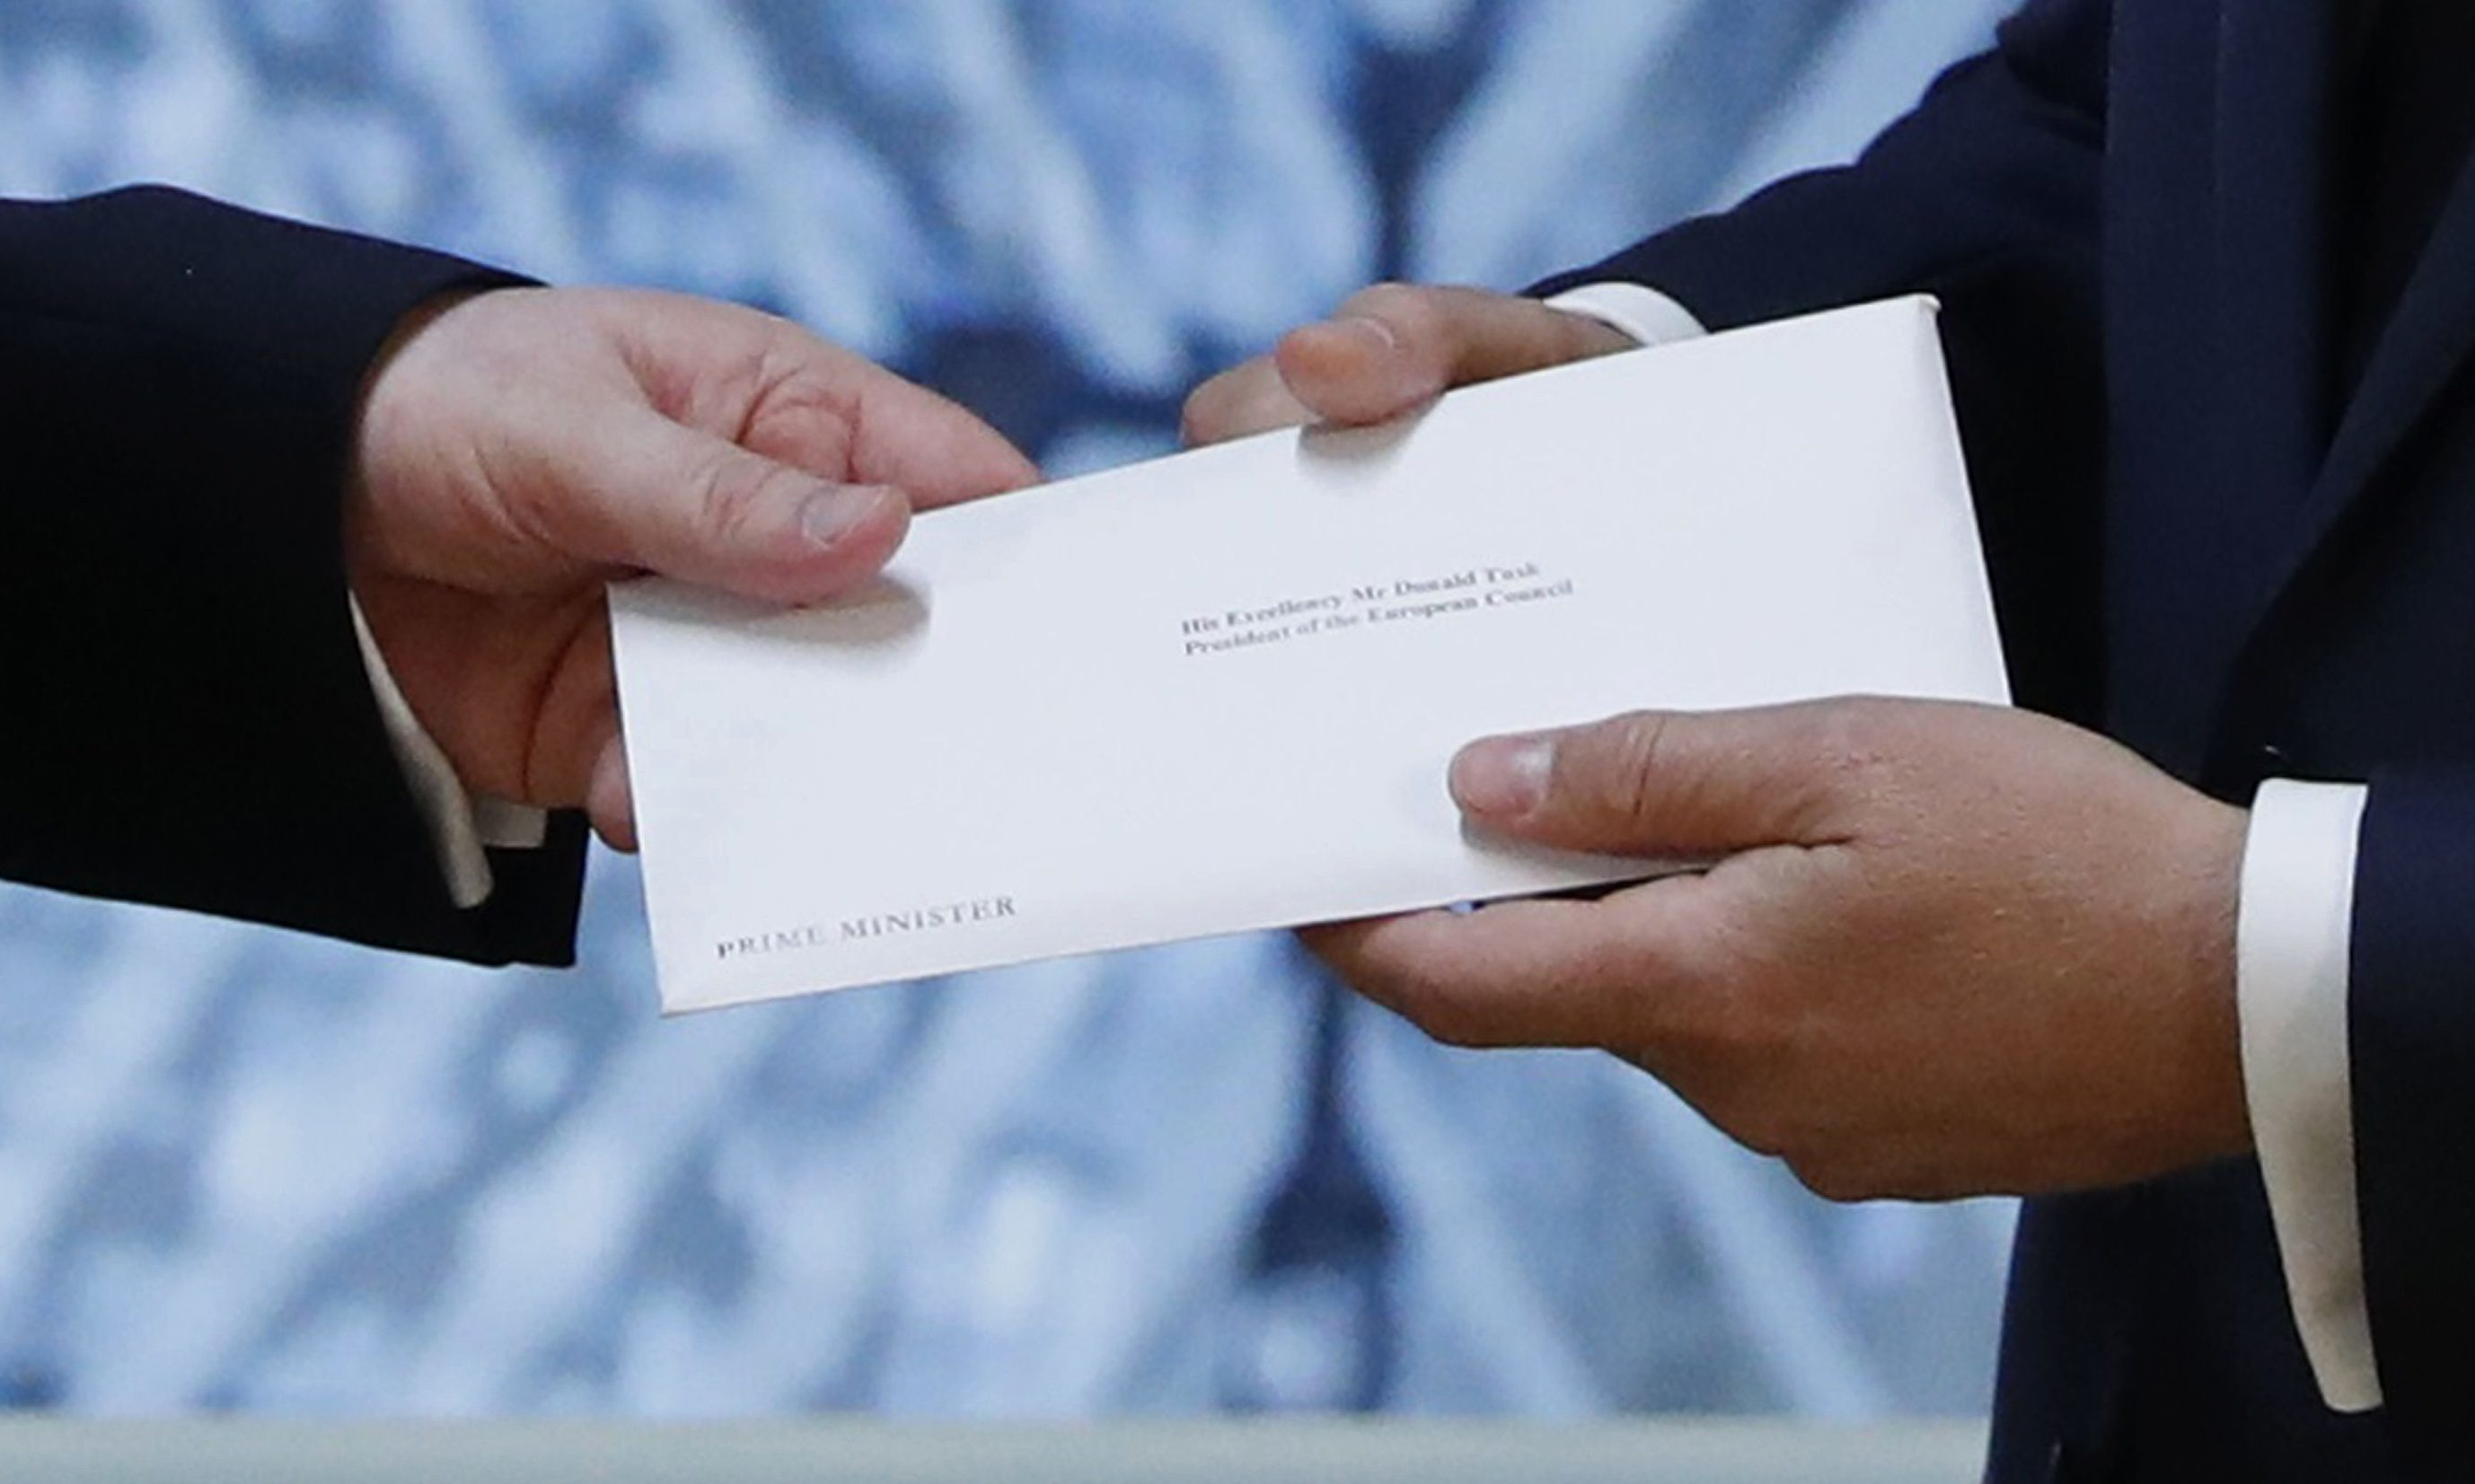 The letter that will formally trigger the beginning of Britain's exit from the European Union is handed over in Brussels.